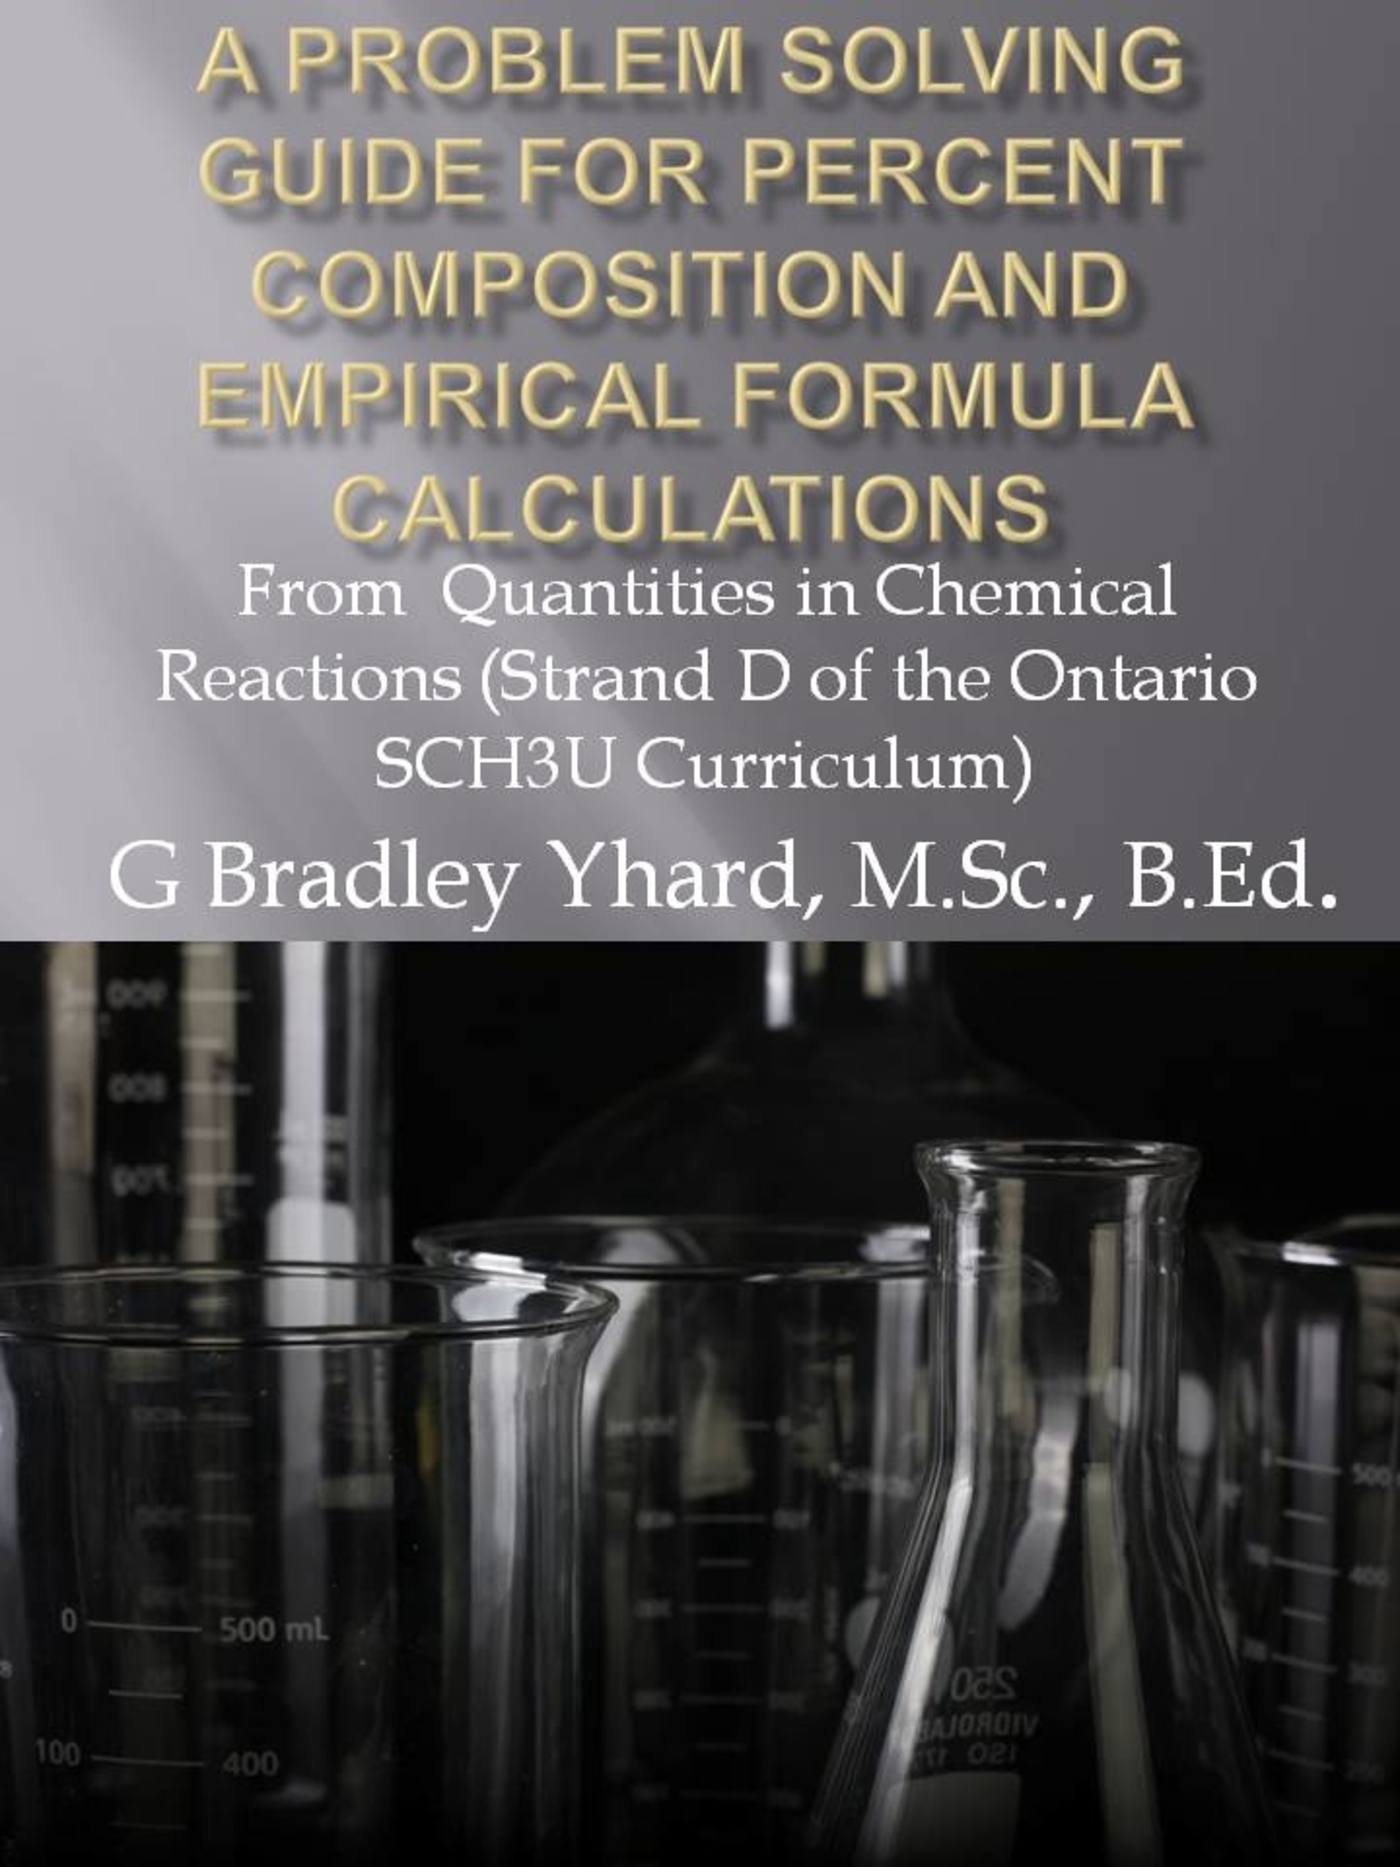 A Problem Solving Guide for Percent Composition and Empirical Formula  Calculations: From Quantities in Chemical Reactions (Strand D of the  Ontario